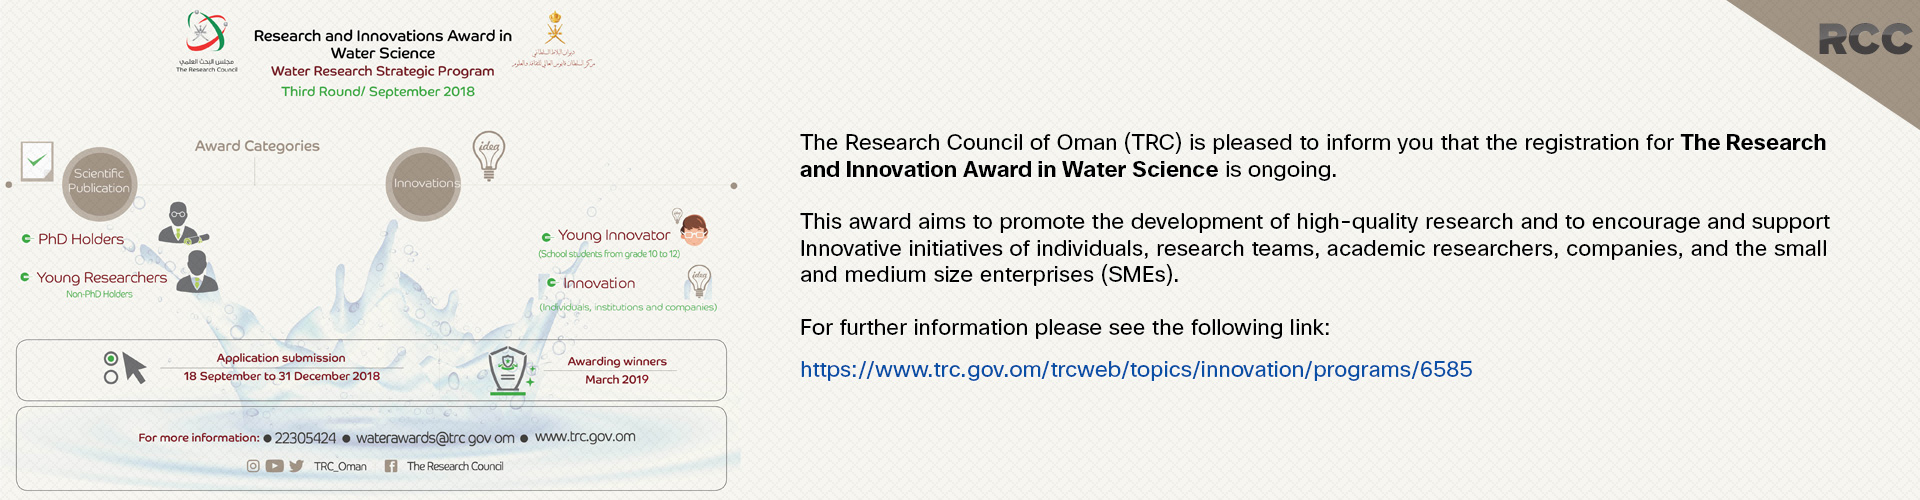 The Research and Innovation Award in Water Science